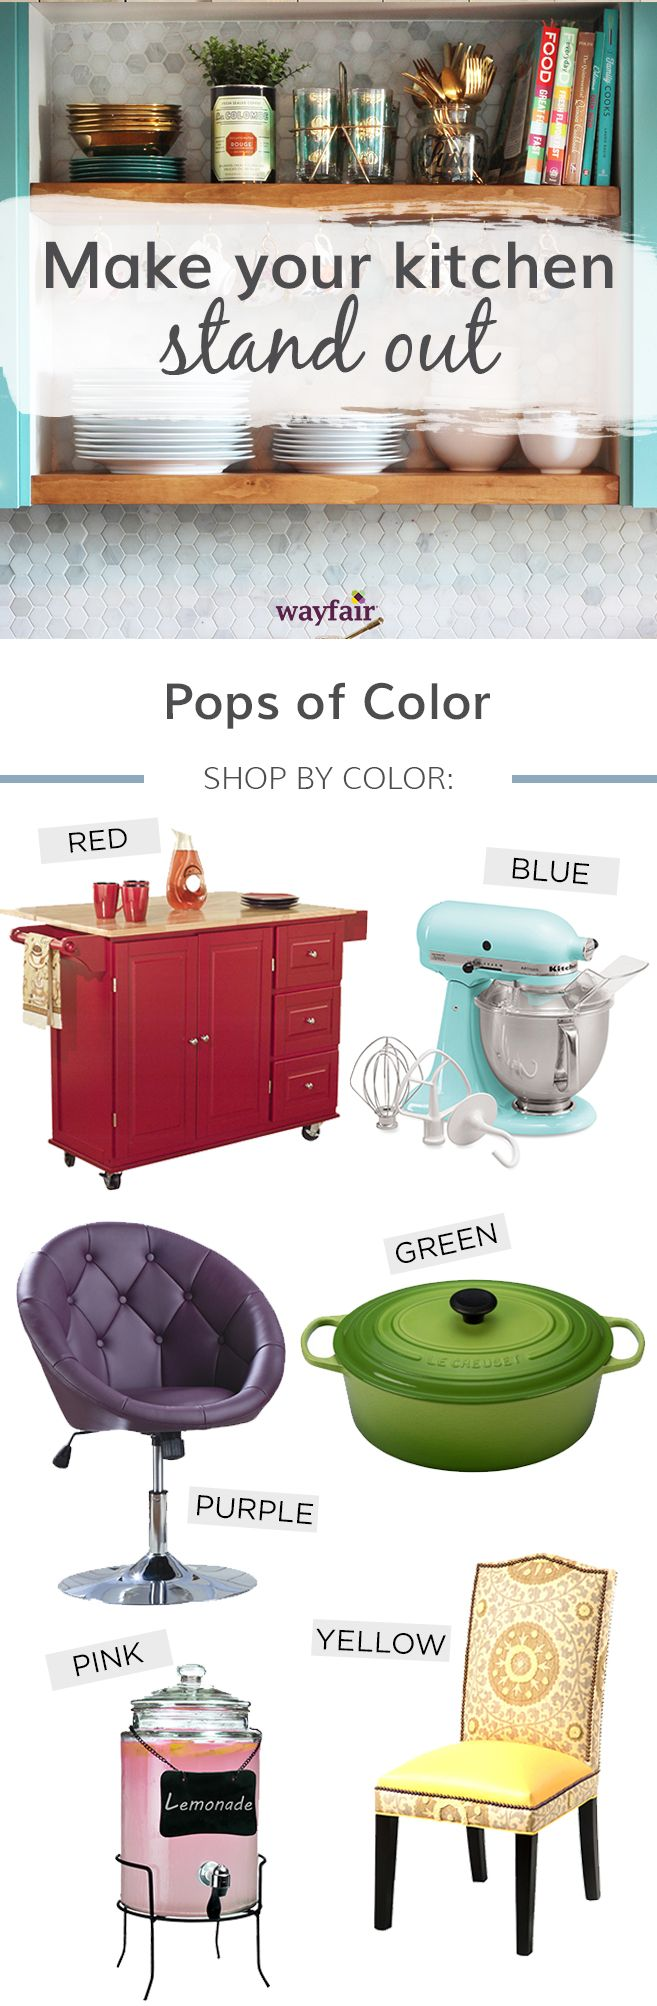 Add personal touch with a pop of color in your kitchen! Group colorful objects together to form more volume in one area, or scatter color around the kitchen with coordinating accessories. Visit Wayfair and sign up today to get access to exclusive deals everyday up to 70% off. Free shipping on all orders over $49.